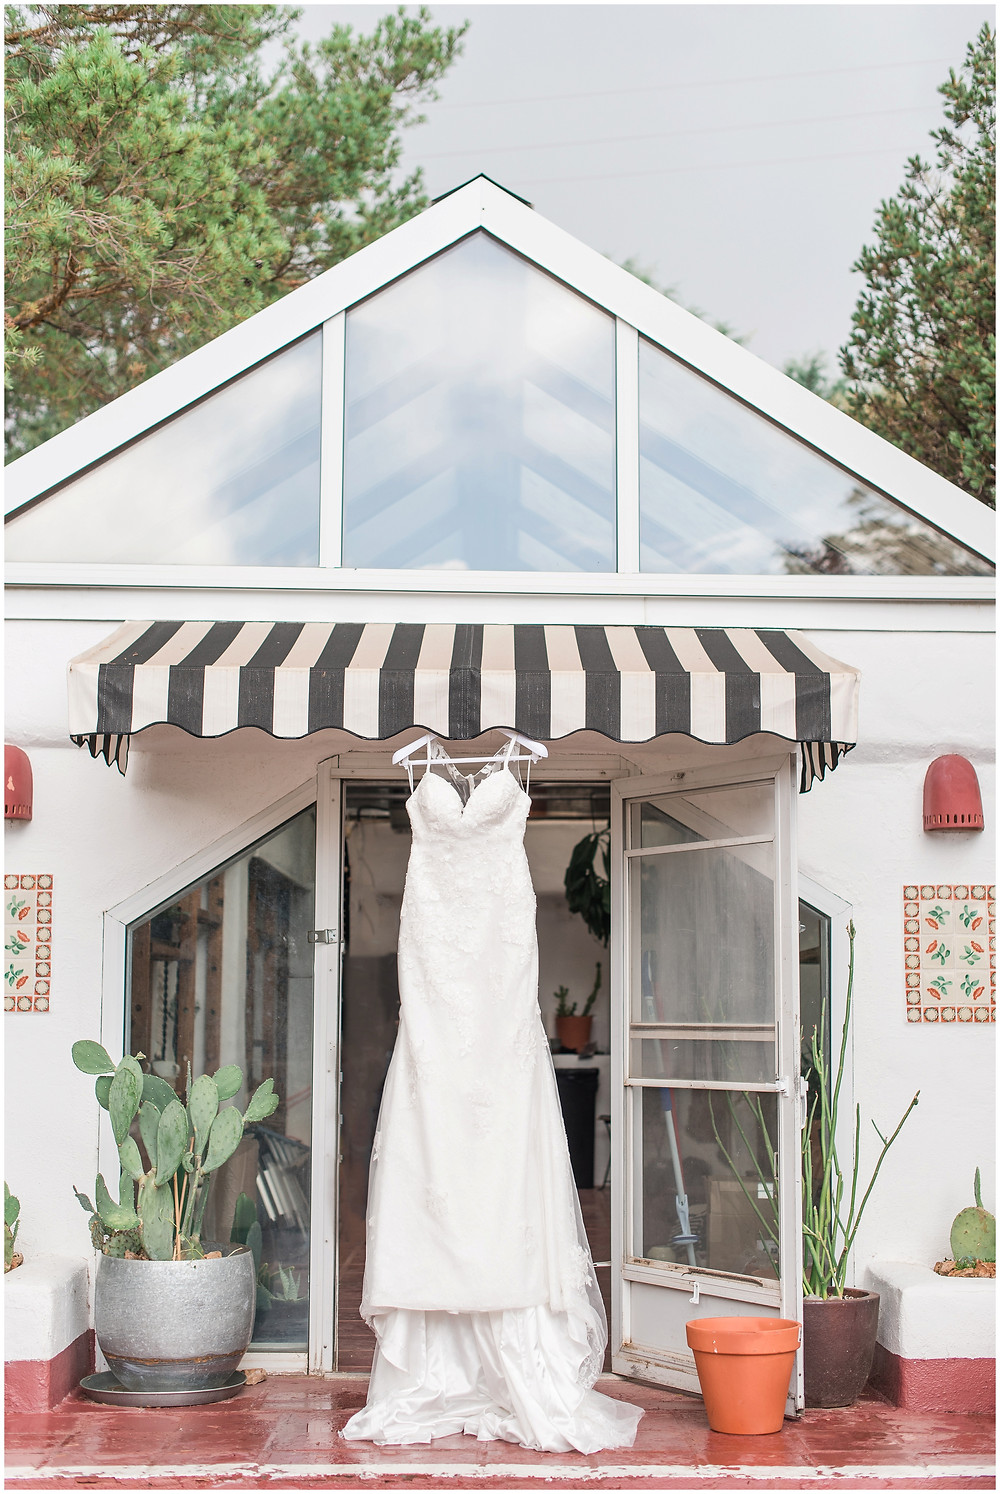 El Ray Court Wedding. El Ray Court Santa Fe. Santa Fe Wedding. Santa Fe Wedding Photographer. New Mexico Wedding. New Mexico Wedding Photographer. Lace Wedding Dress. Strapless Wedding Dress. Kate Spade Wedding. Garden Wedding.